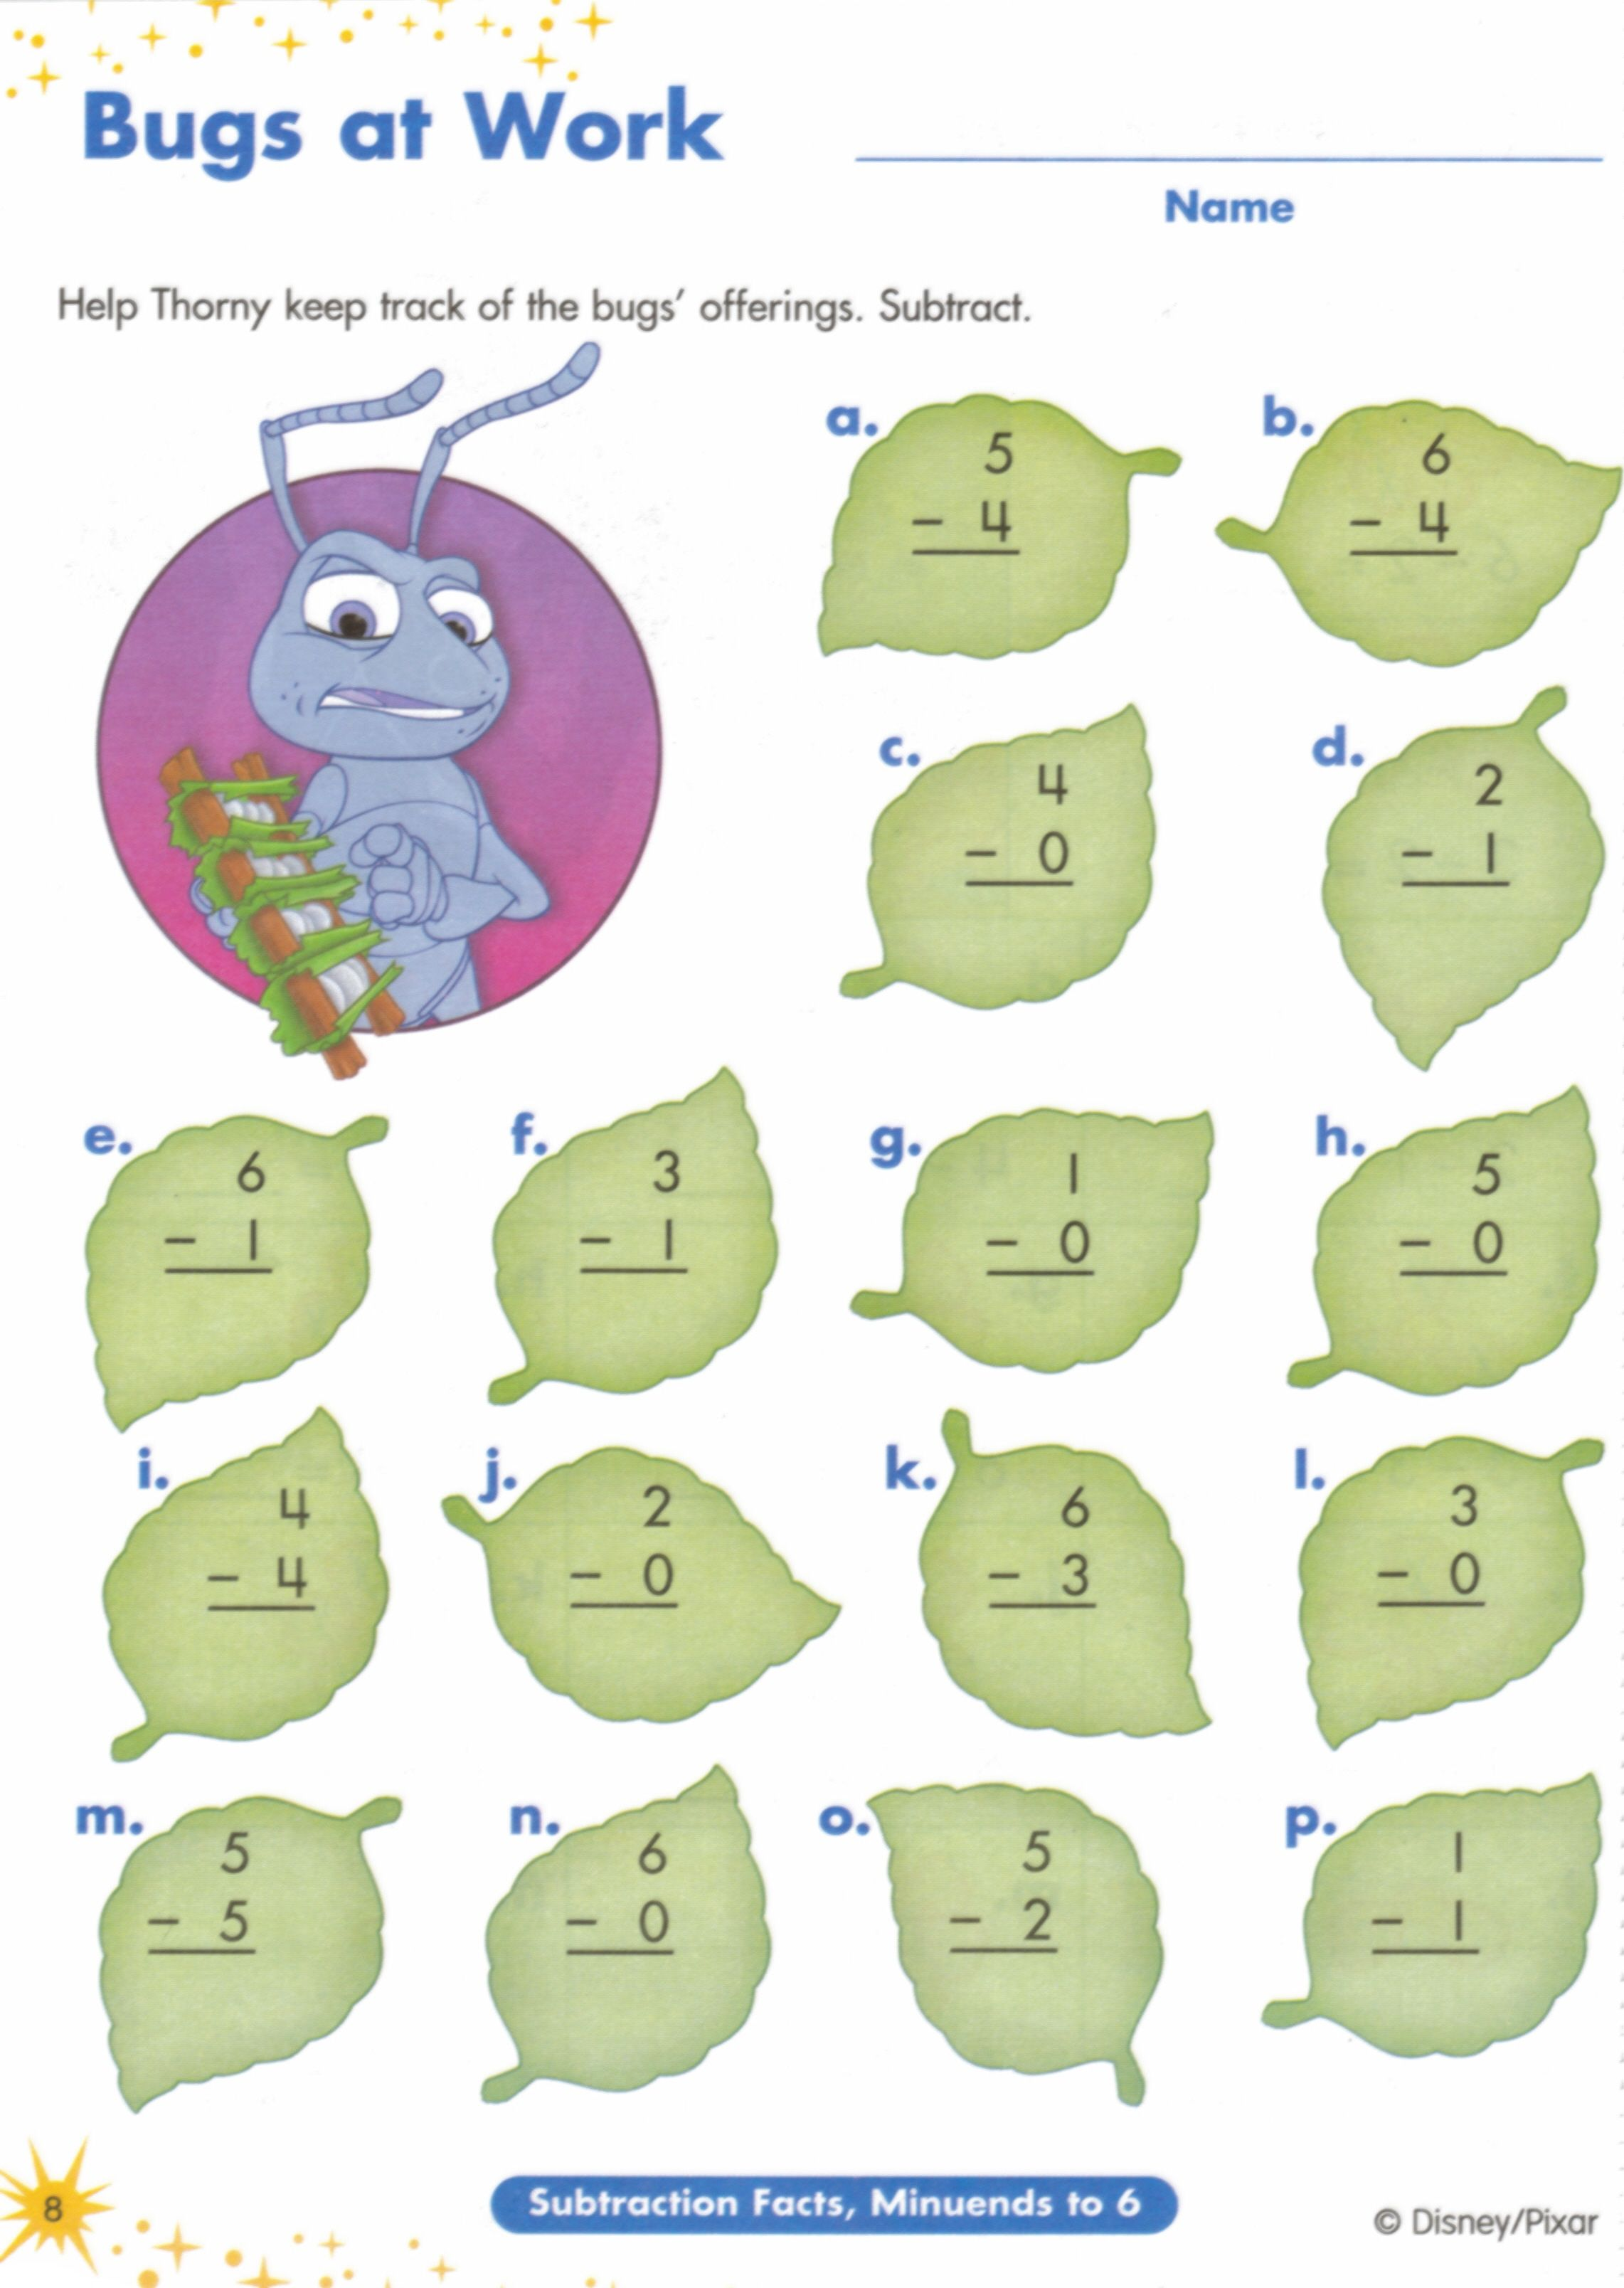 Proatmealus  Remarkable  Images About Worksheets On Pinterest  Fun Facts For Kids  With Inspiring  Images About Worksheets On Pinterest  Fun Facts For Kids Earth Day Worksheets And Jungles With Lovely Counting In Tens Worksheet Also Worksheets On Properties In Addition Fun Geography Worksheets And Misterguch Chemistry Worksheets As Well As An And A Worksheets Additionally Punctuation Rules Worksheets From Pinterestcom With Proatmealus  Inspiring  Images About Worksheets On Pinterest  Fun Facts For Kids  With Lovely  Images About Worksheets On Pinterest  Fun Facts For Kids Earth Day Worksheets And Jungles And Remarkable Counting In Tens Worksheet Also Worksheets On Properties In Addition Fun Geography Worksheets From Pinterestcom